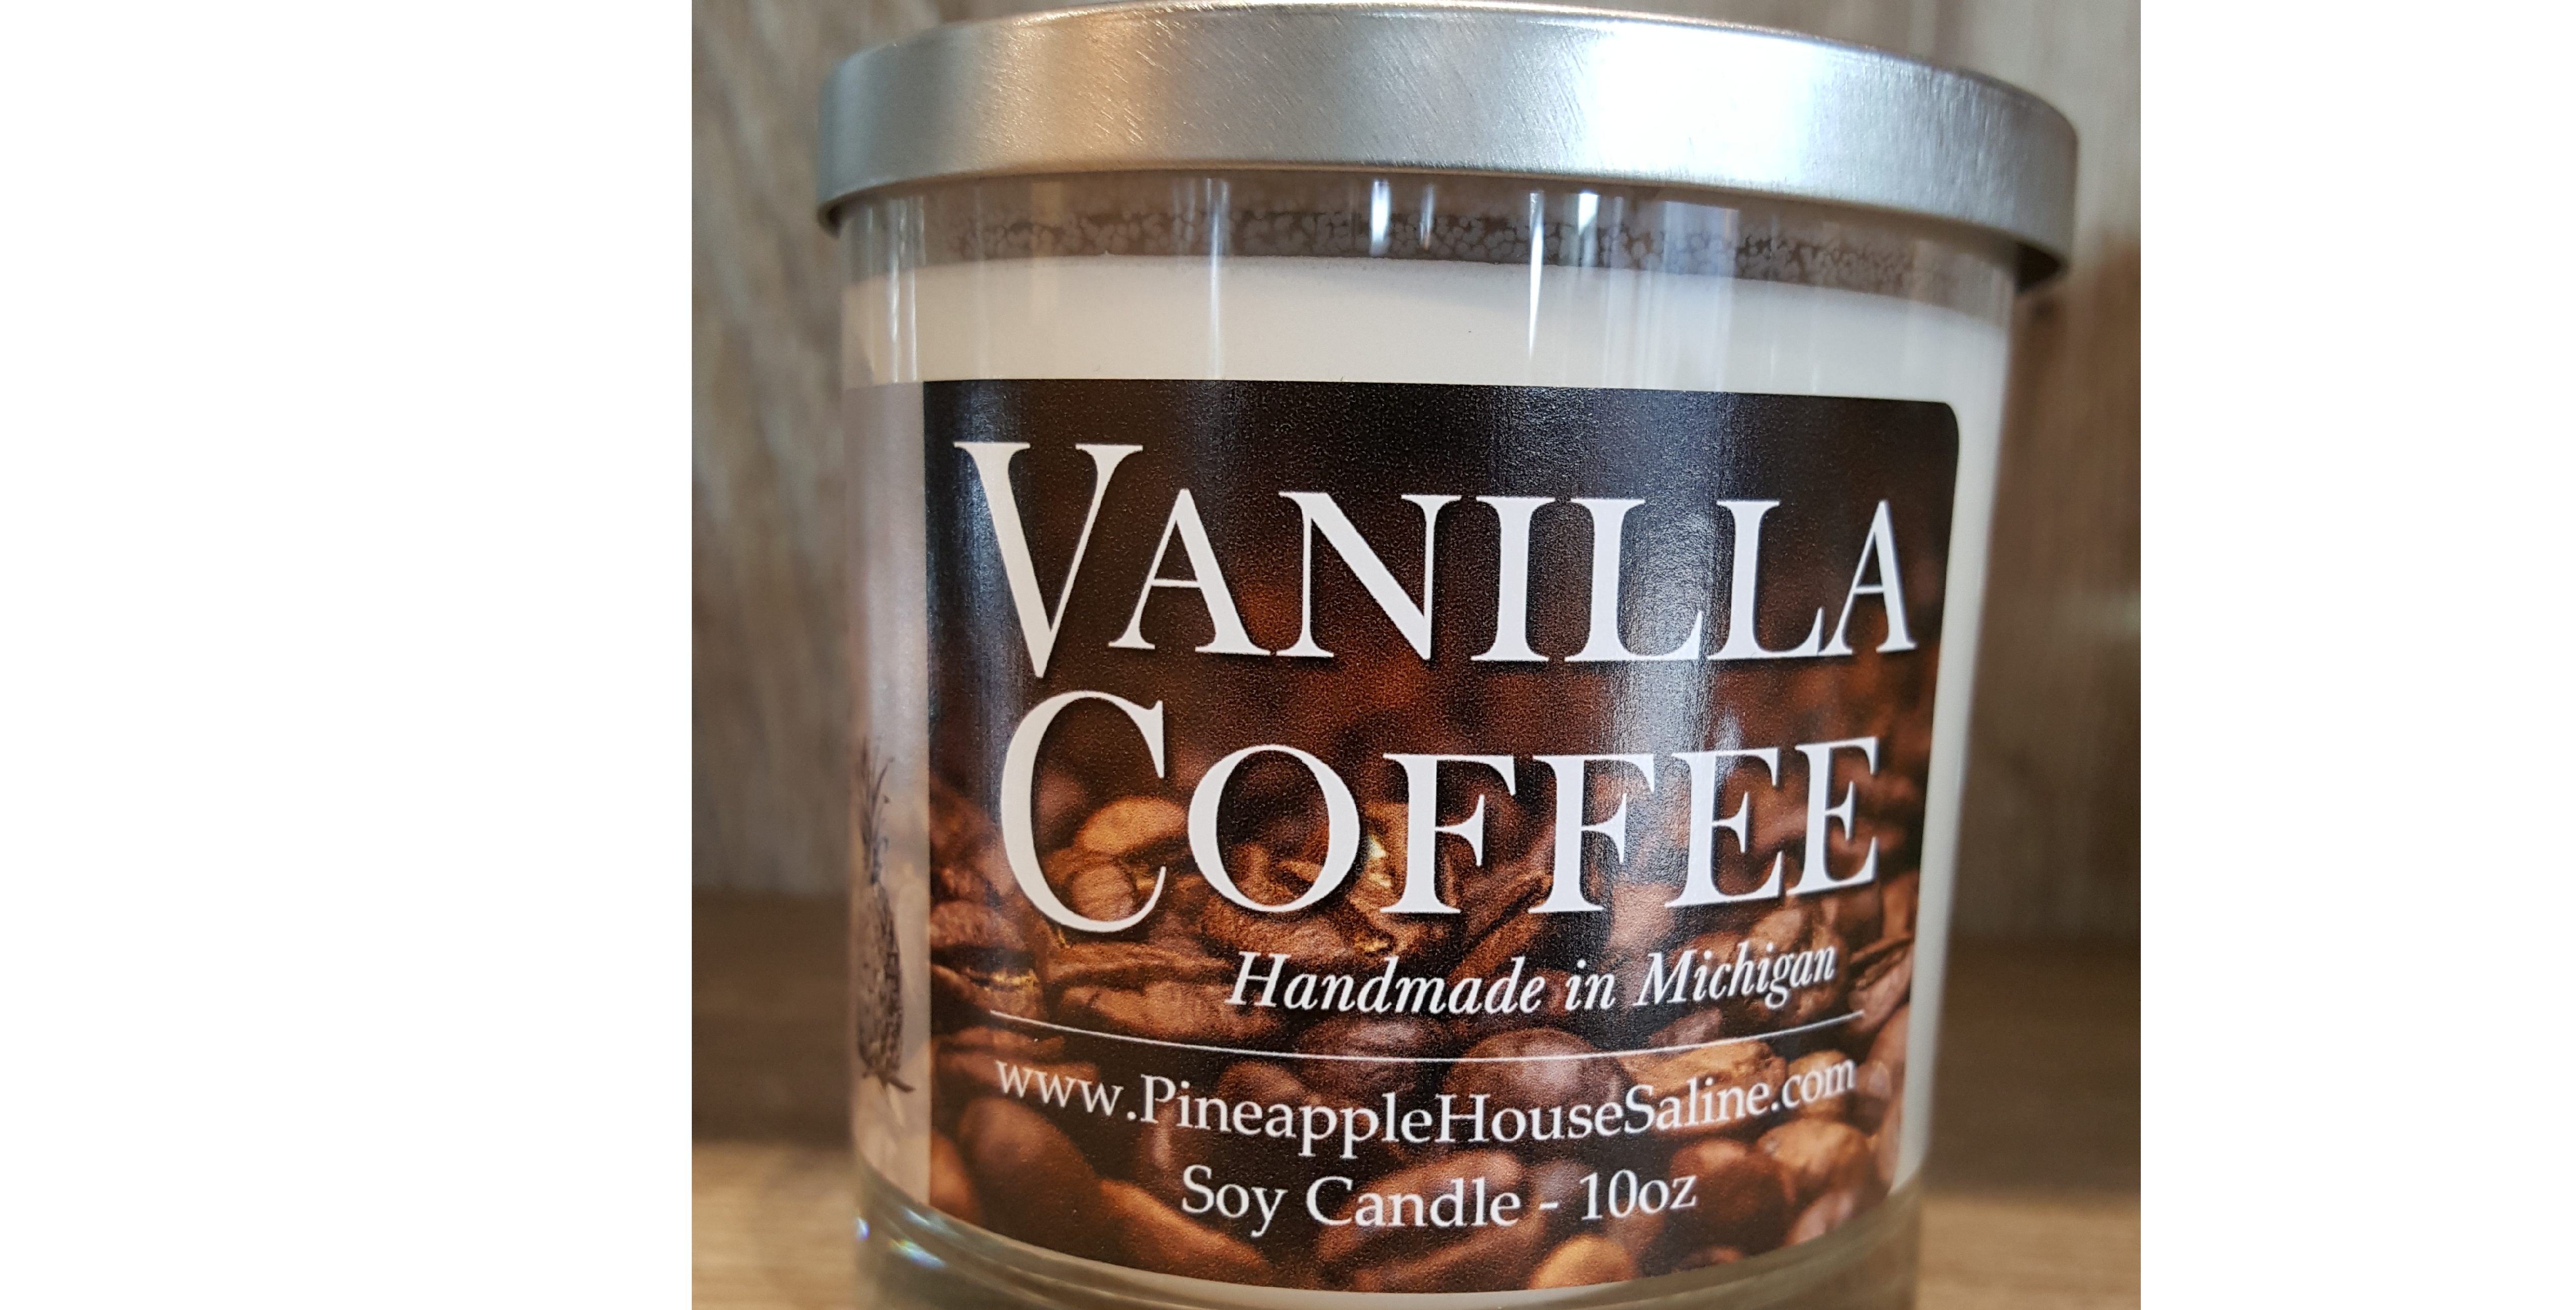 Candle_Pineapple House_Vanilla Coffee_Signature Scent